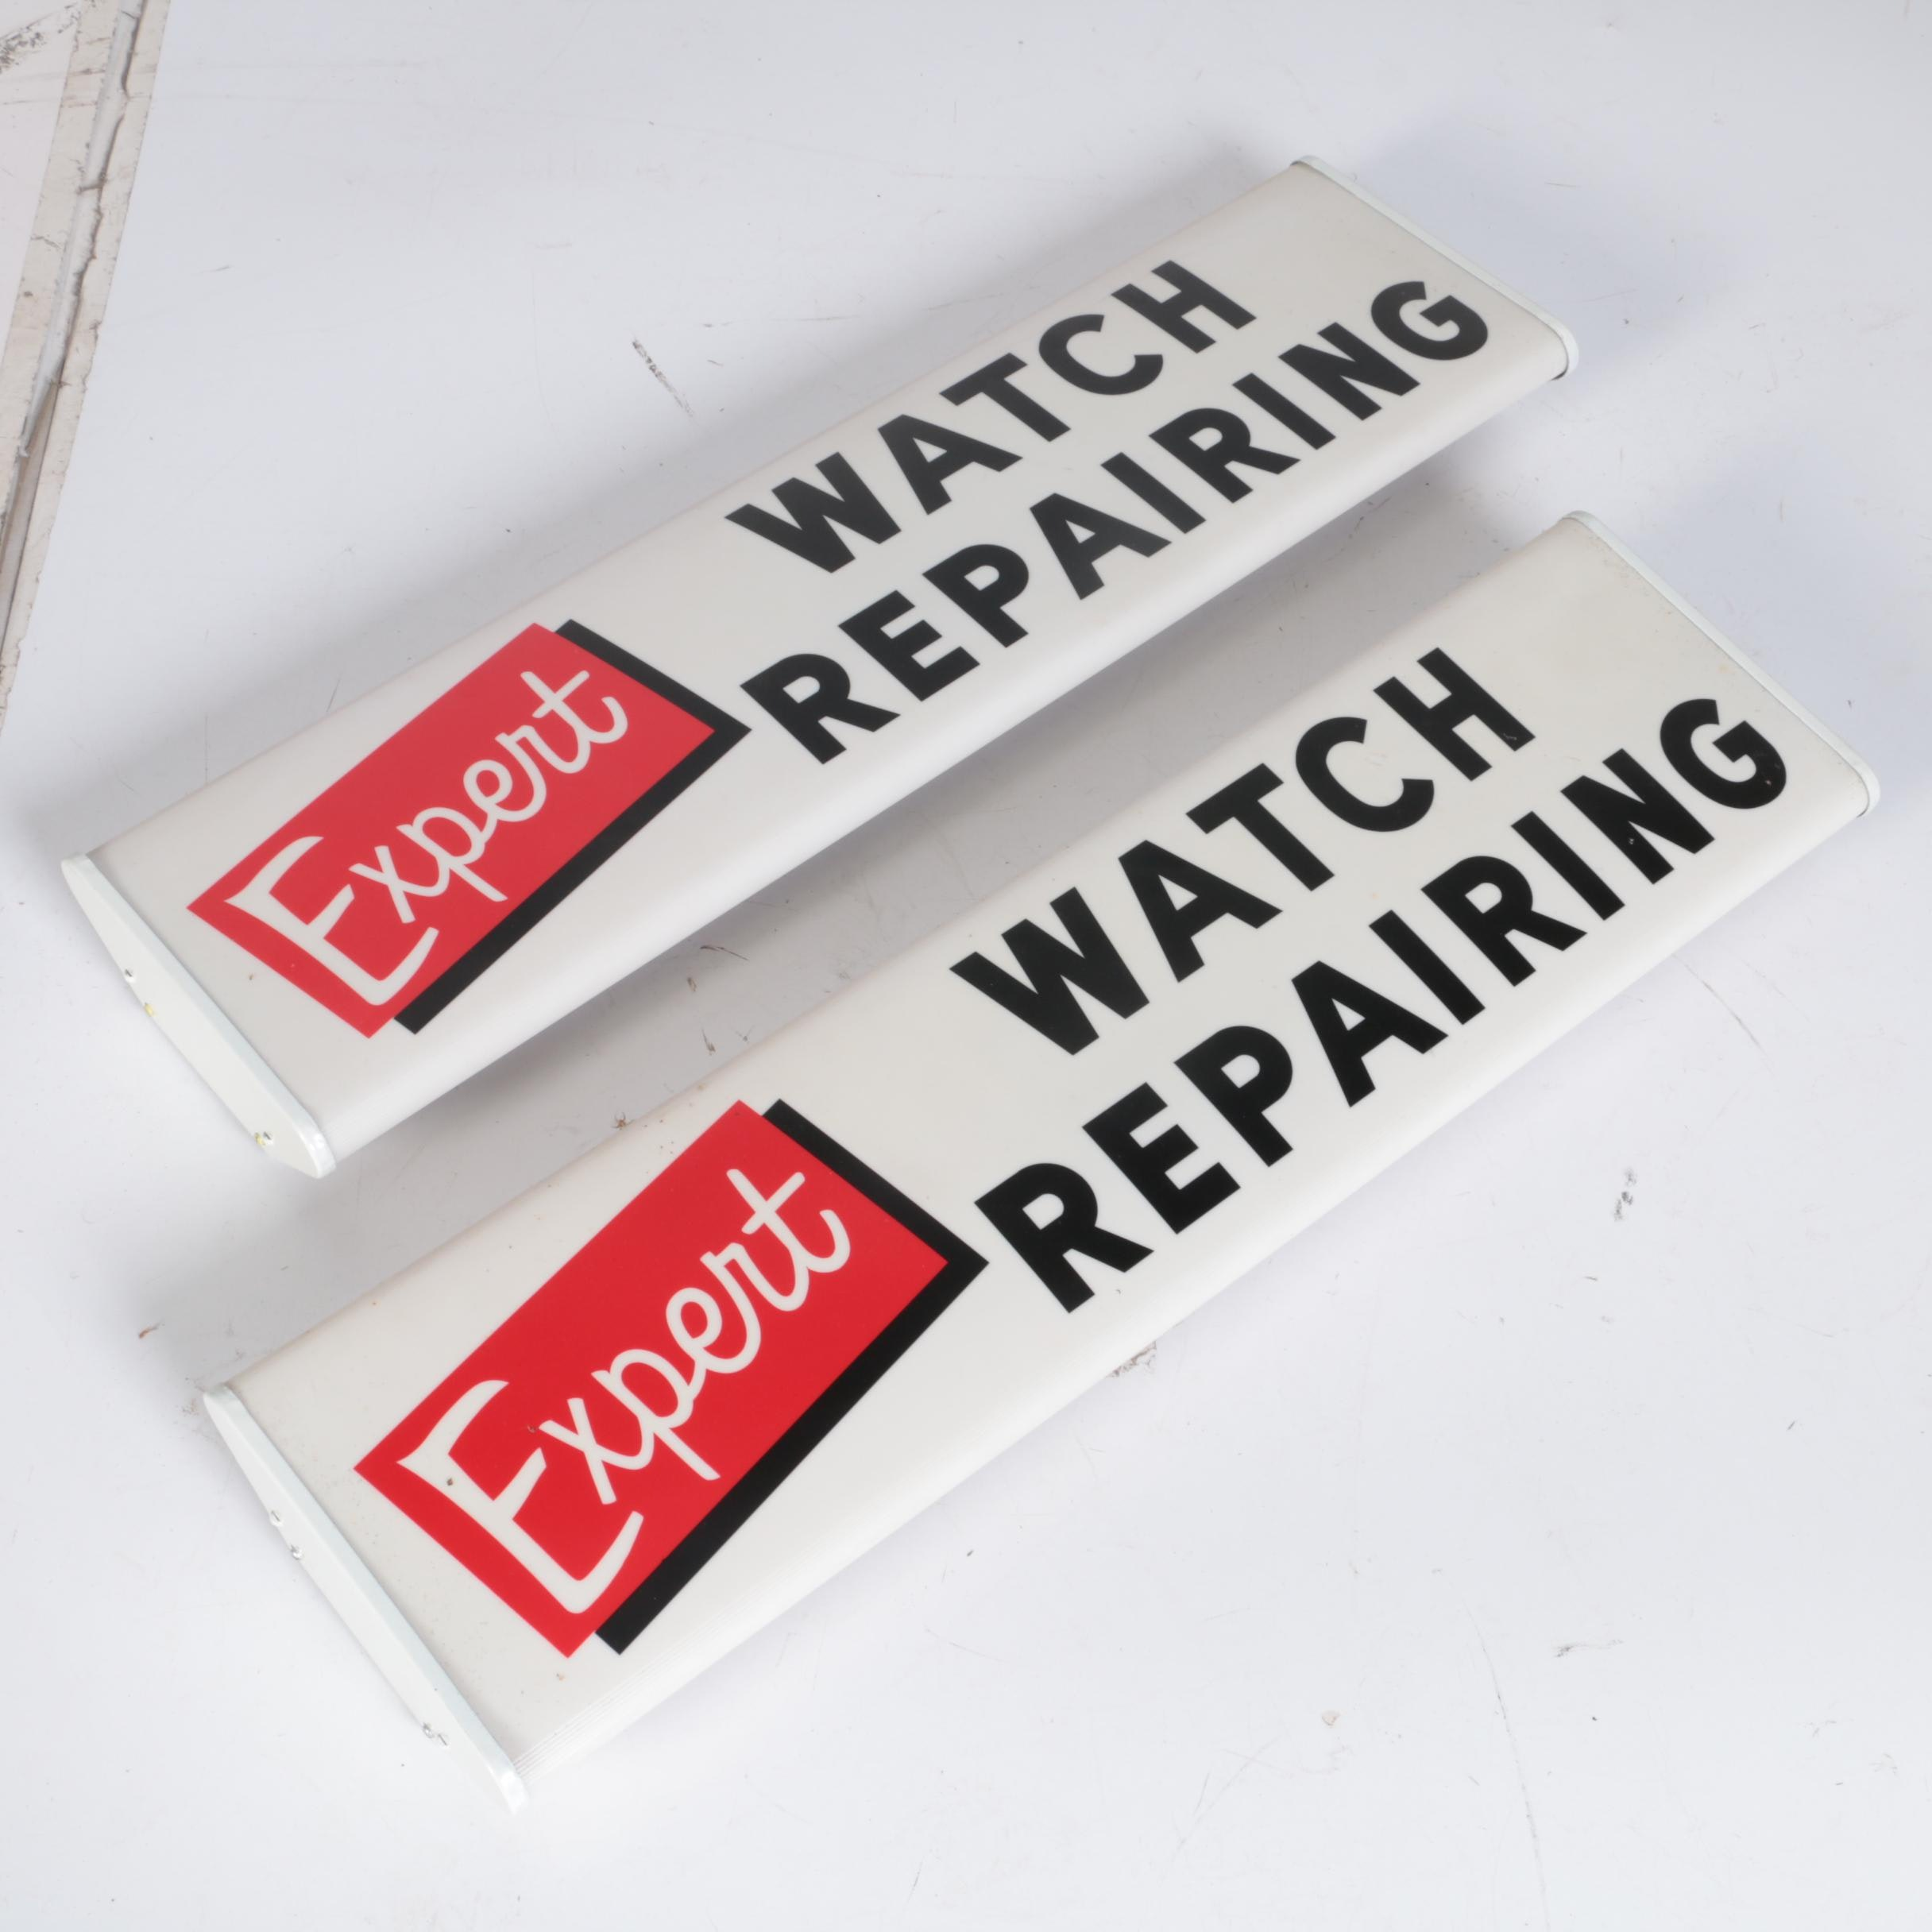 Expert Watch Repair Storefront Signage